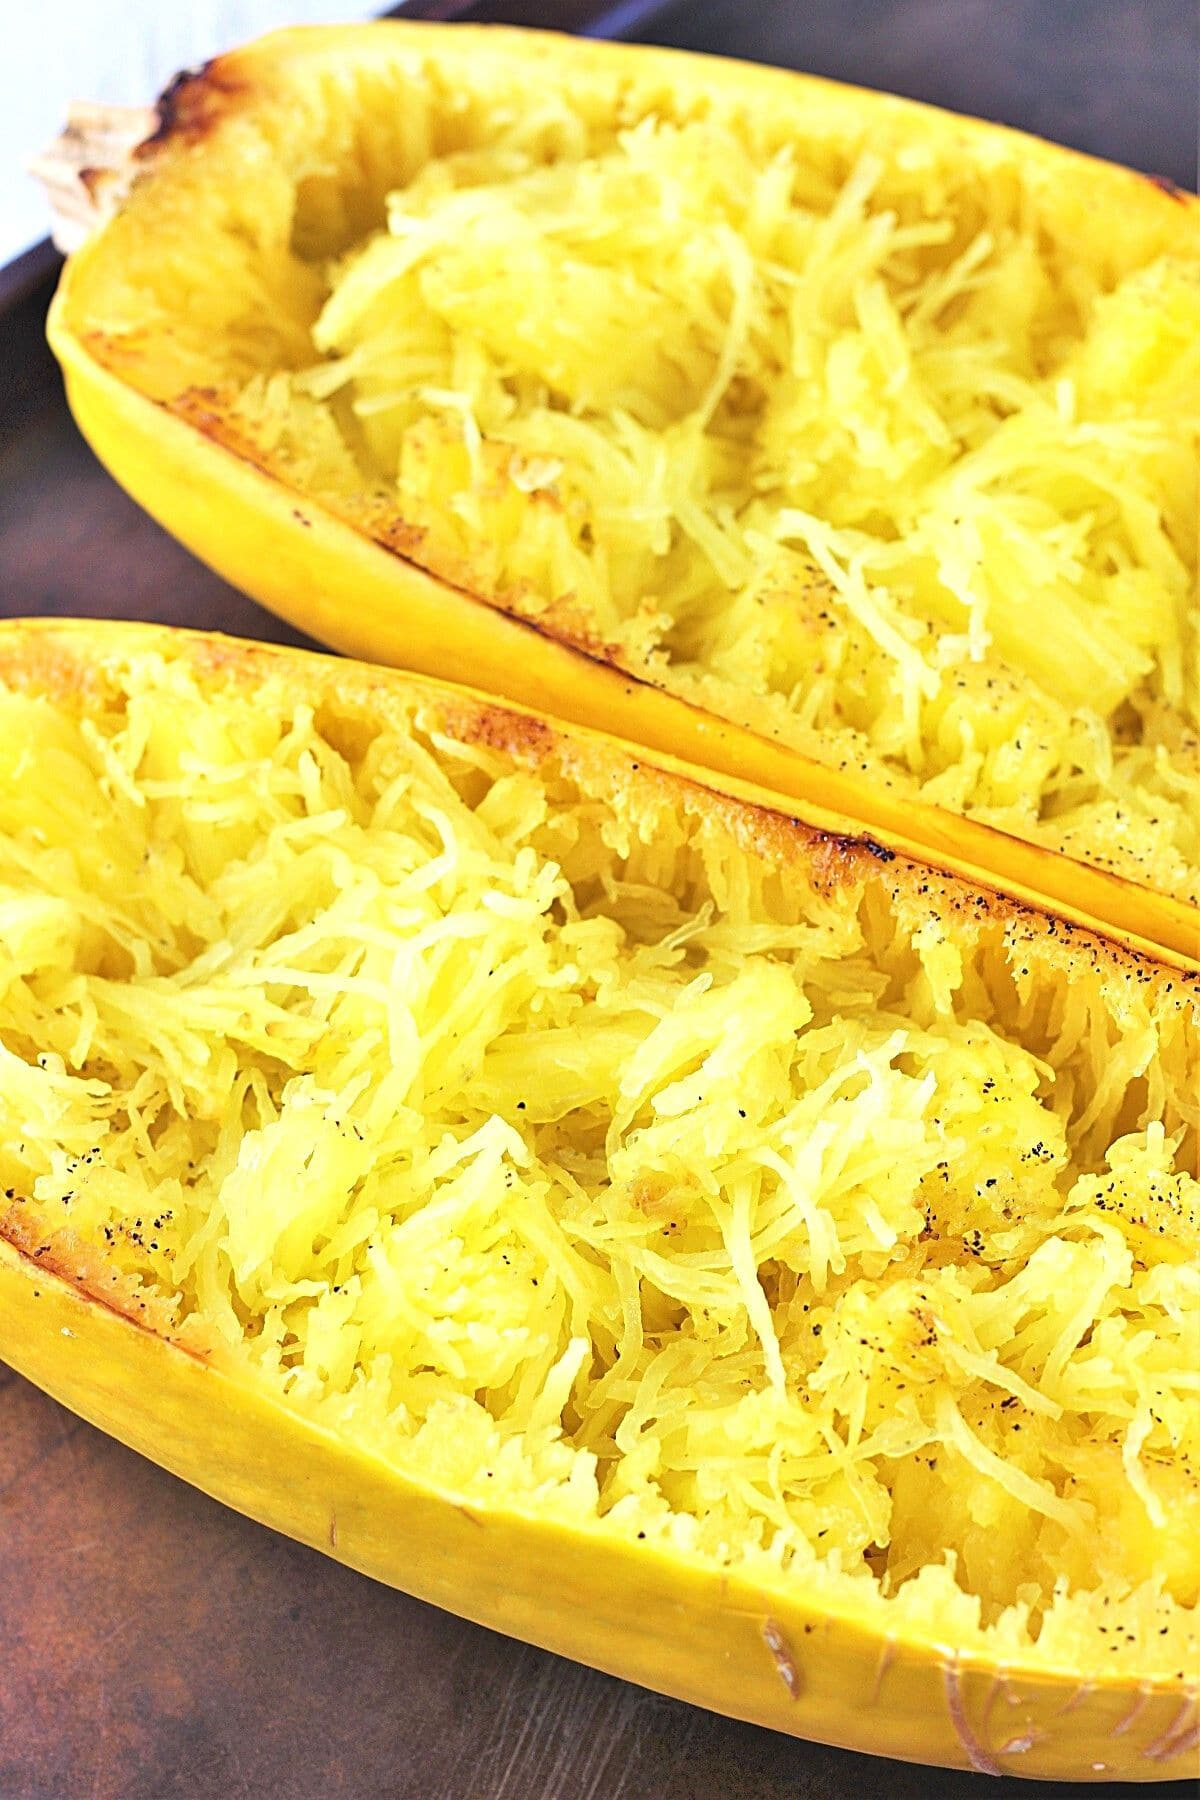 two cooked spaghetti squash halves on a baking sheet